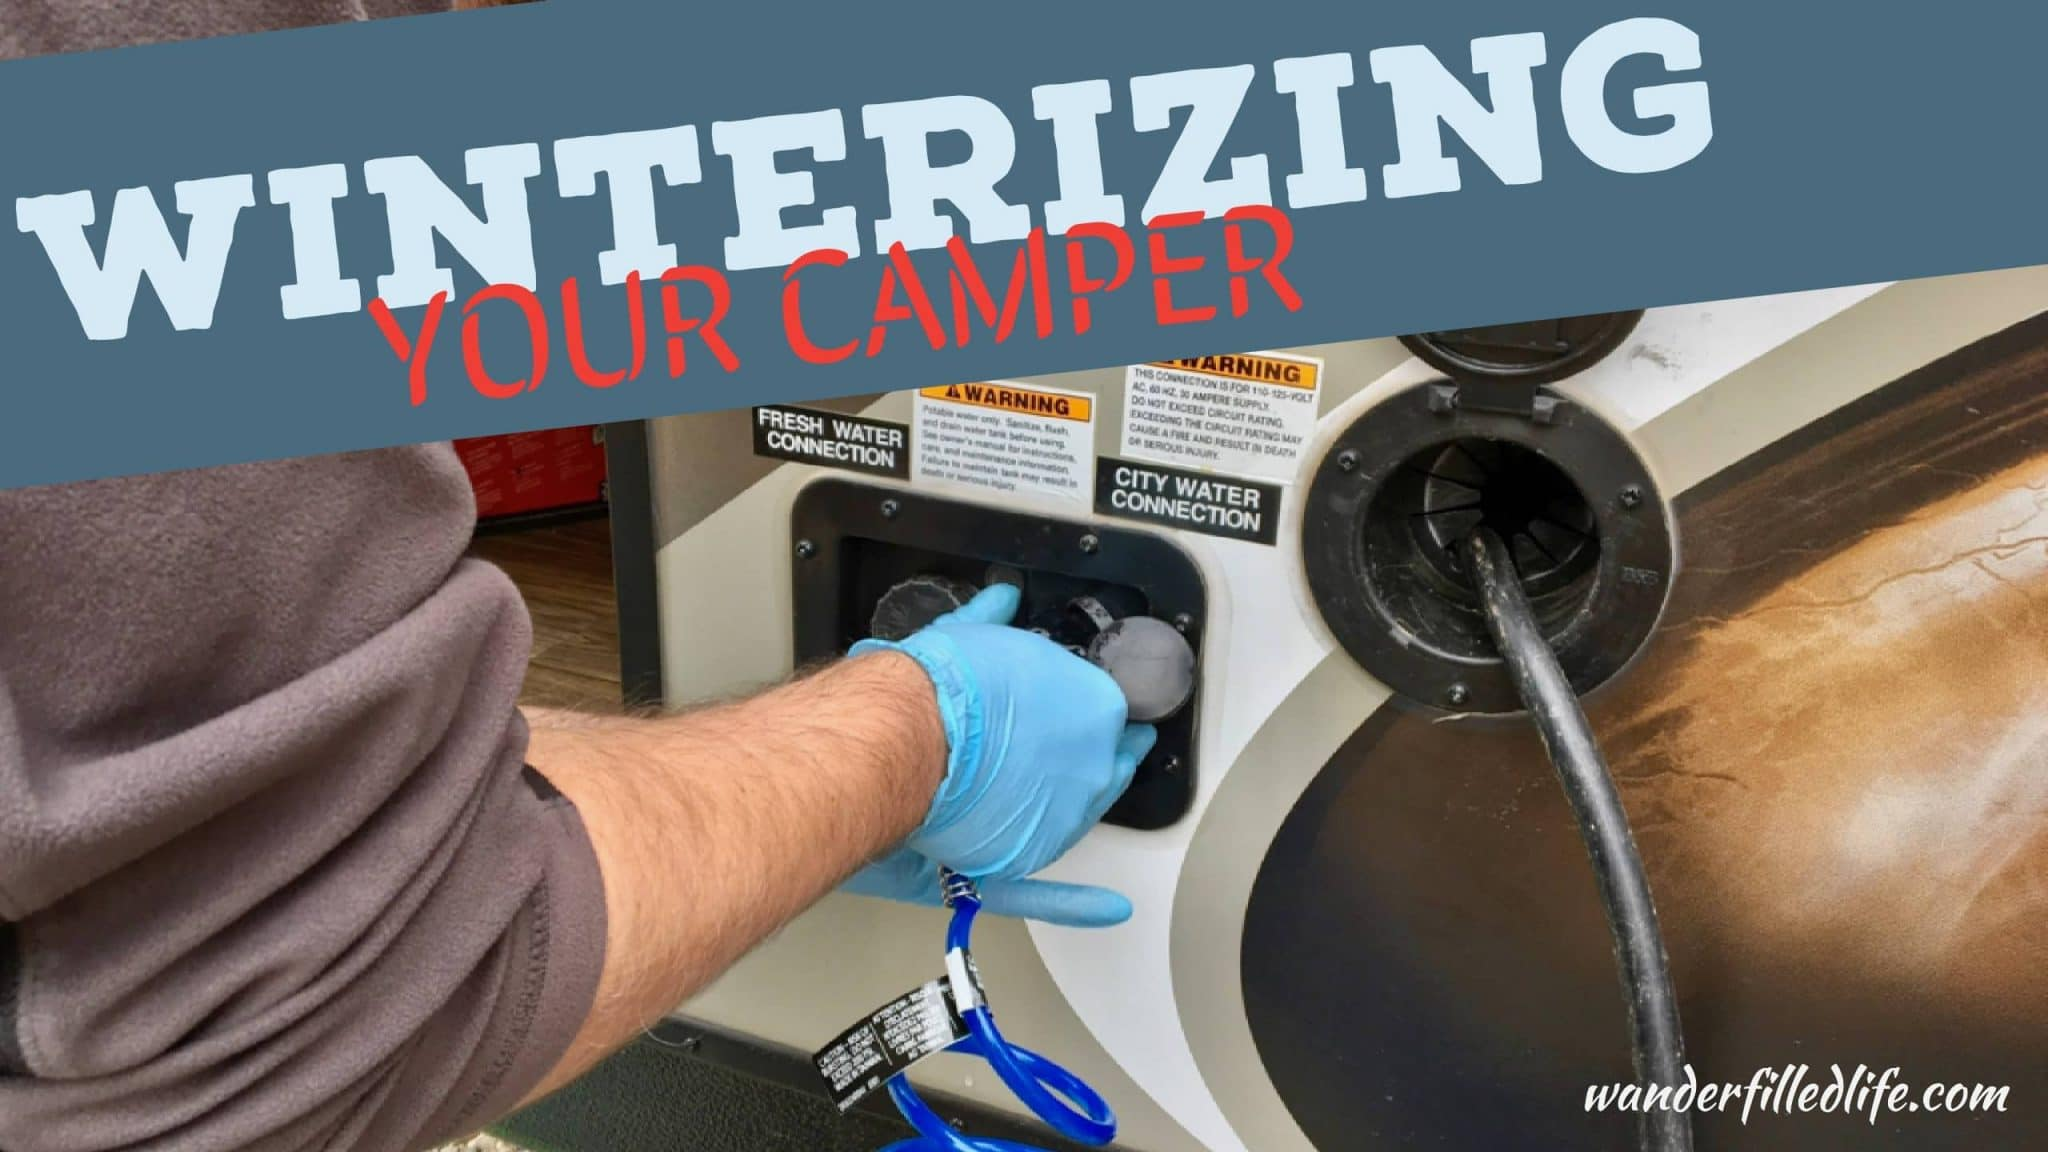 Winterizing Your Camper